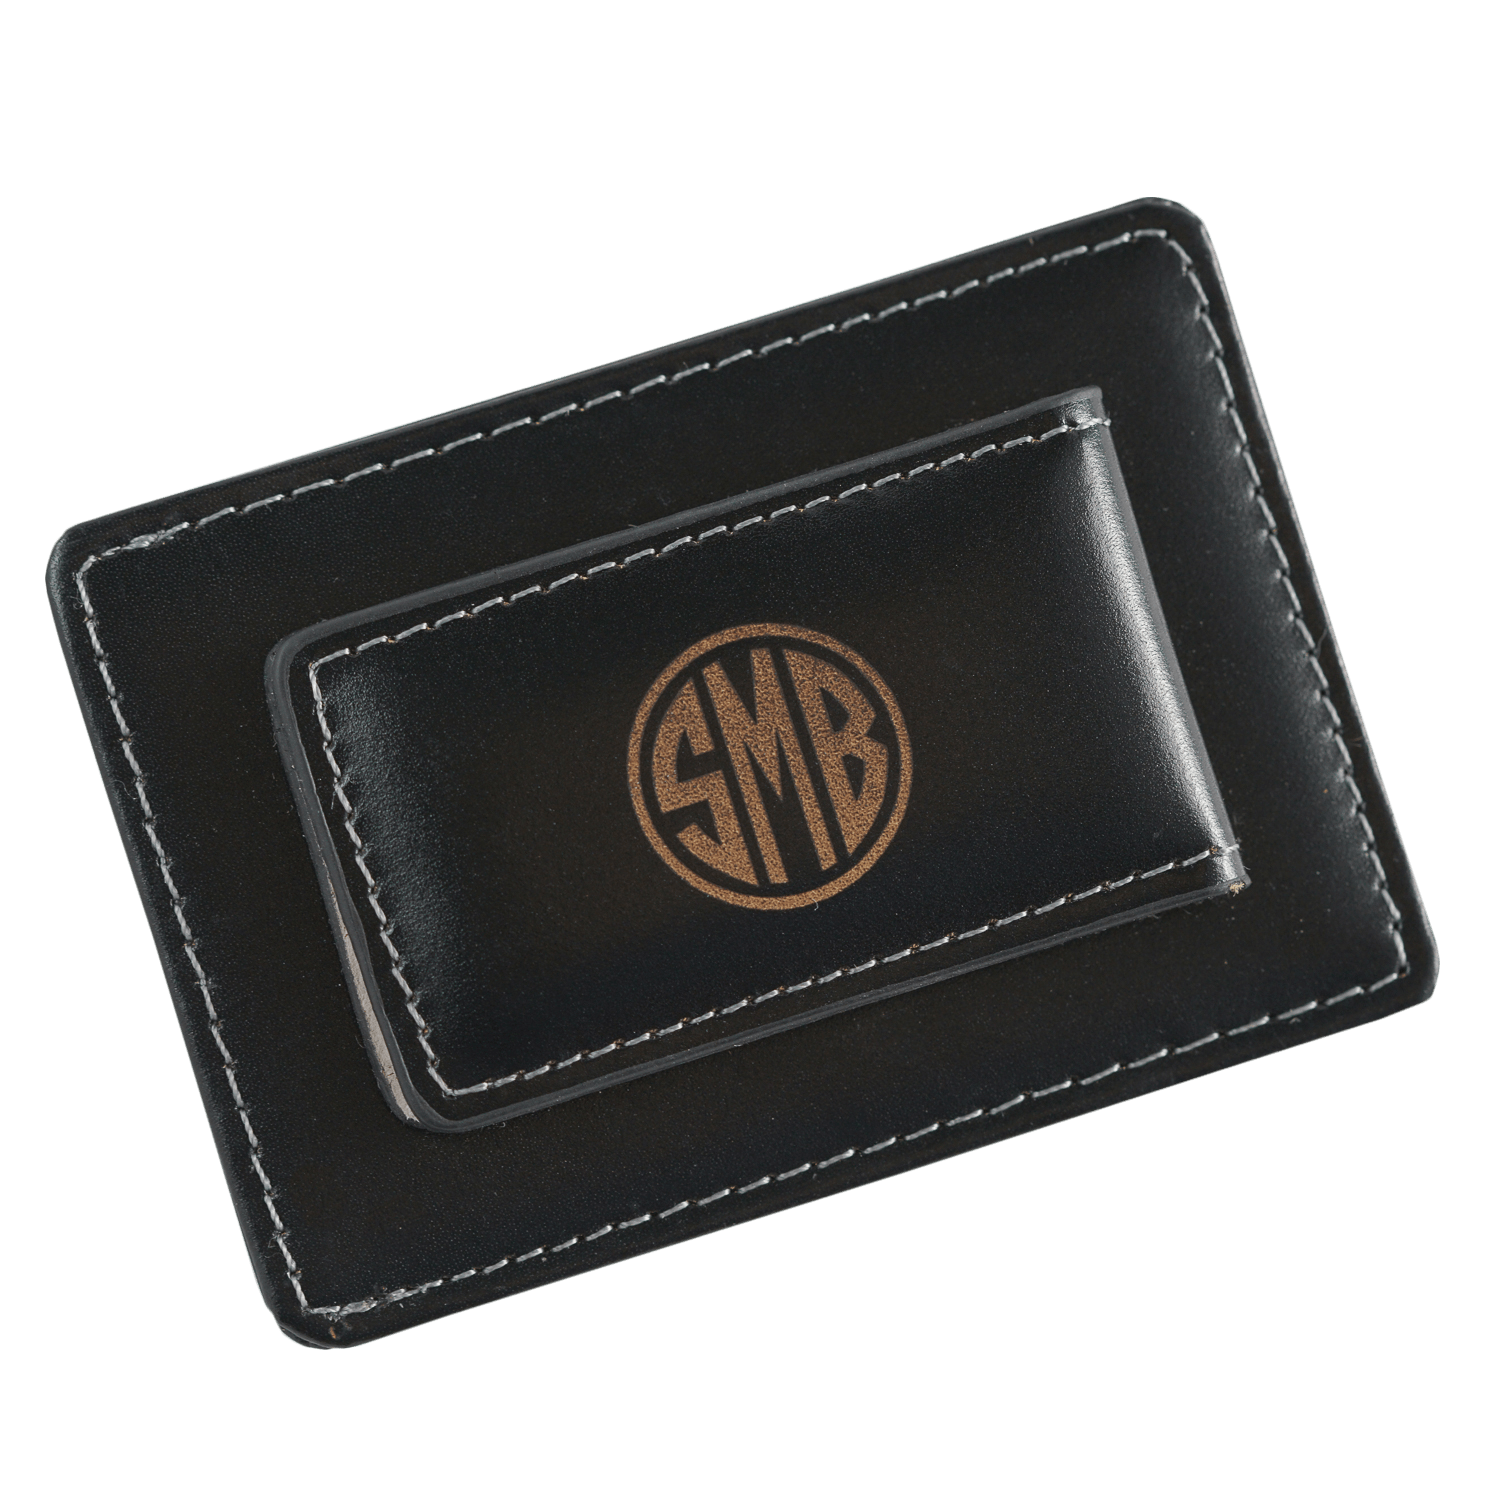 personalized leather money clipcard holder - Money Clip And Card Holder